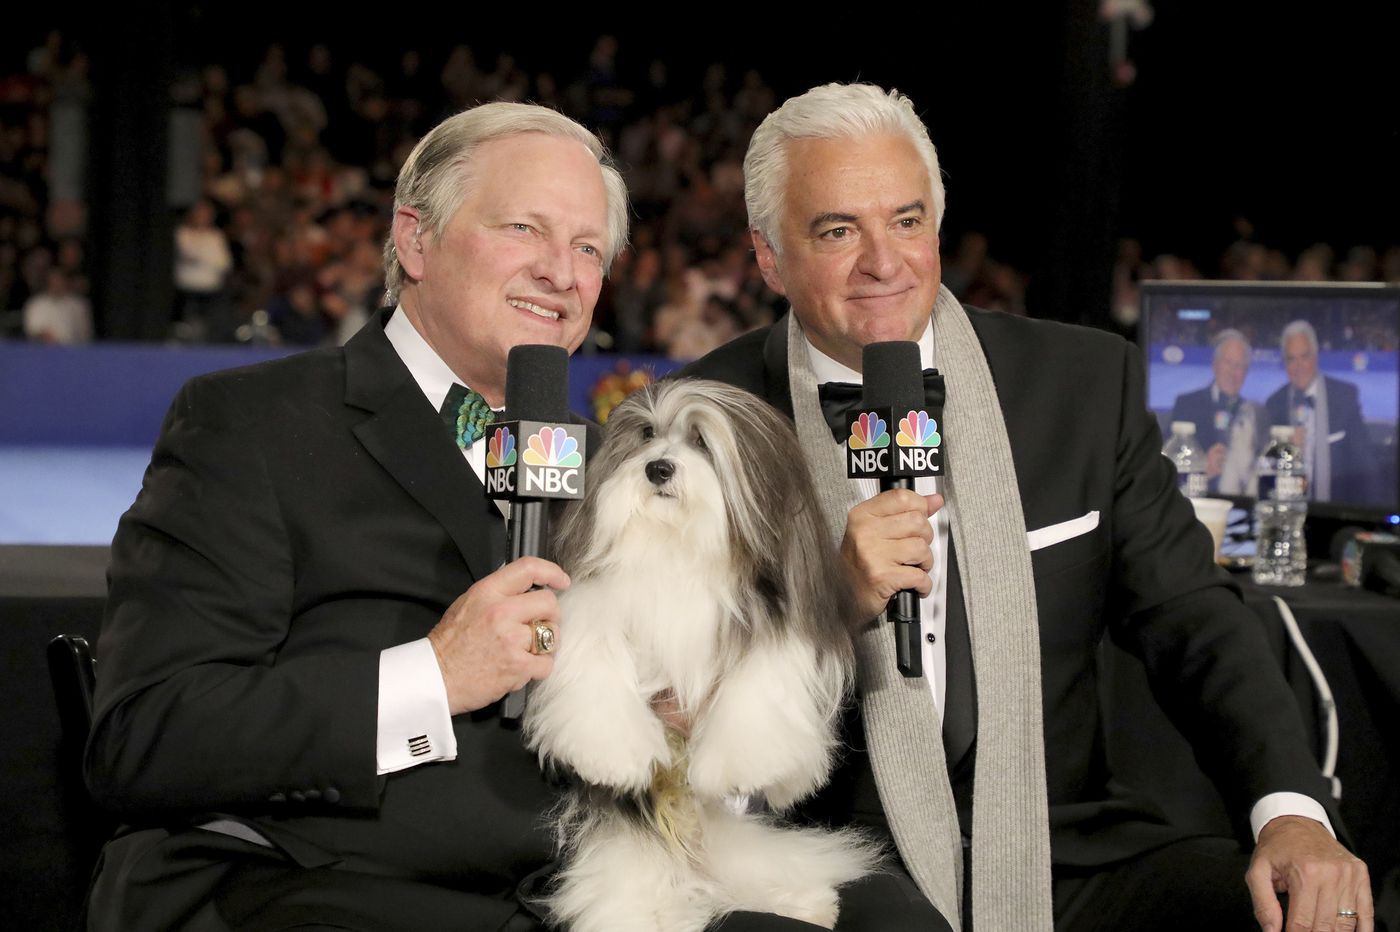 Philly's National Dog Show will go on this year, but doggone it, it's closed to spectators